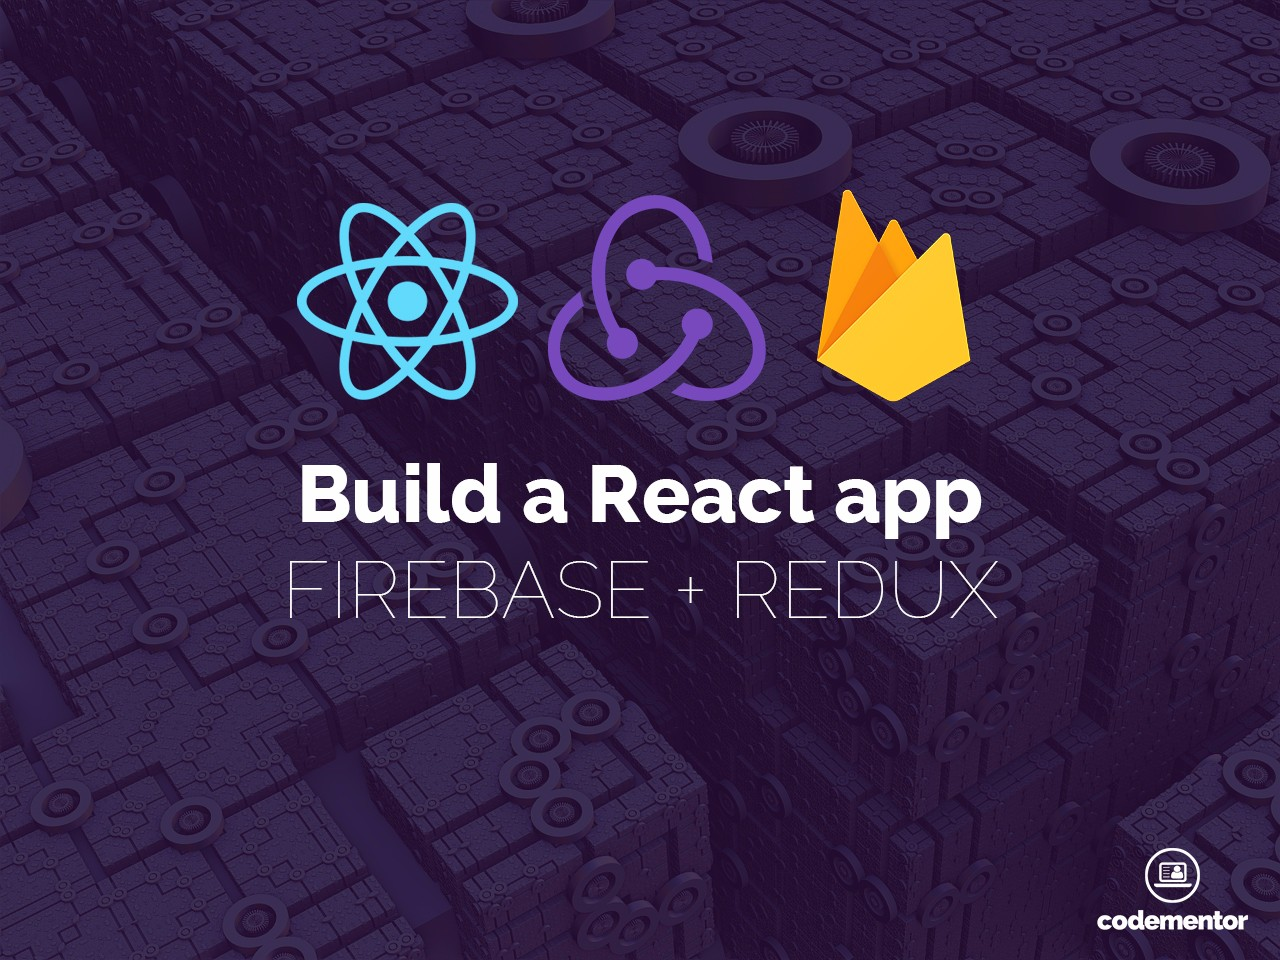 Using Firebase with Redux for Building a React App